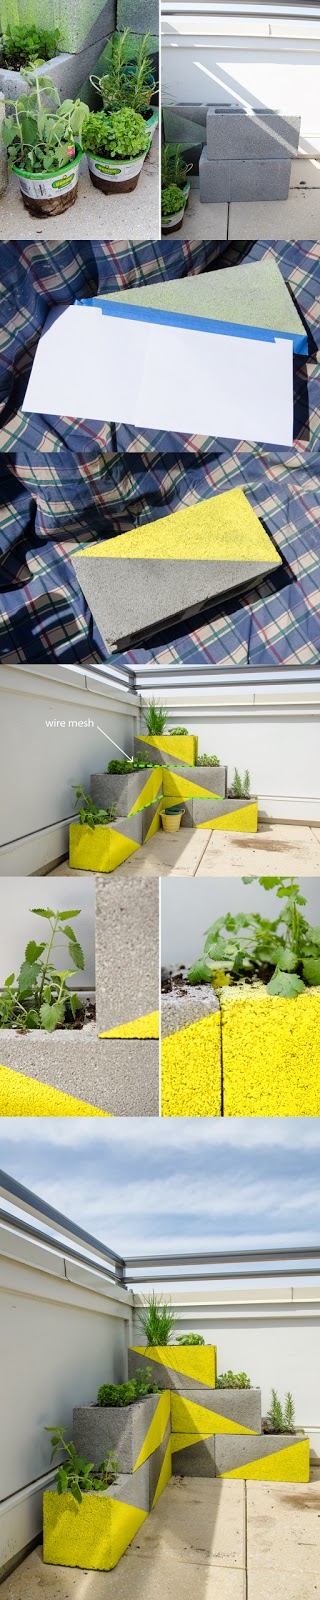 DIY planter with concrete blocks